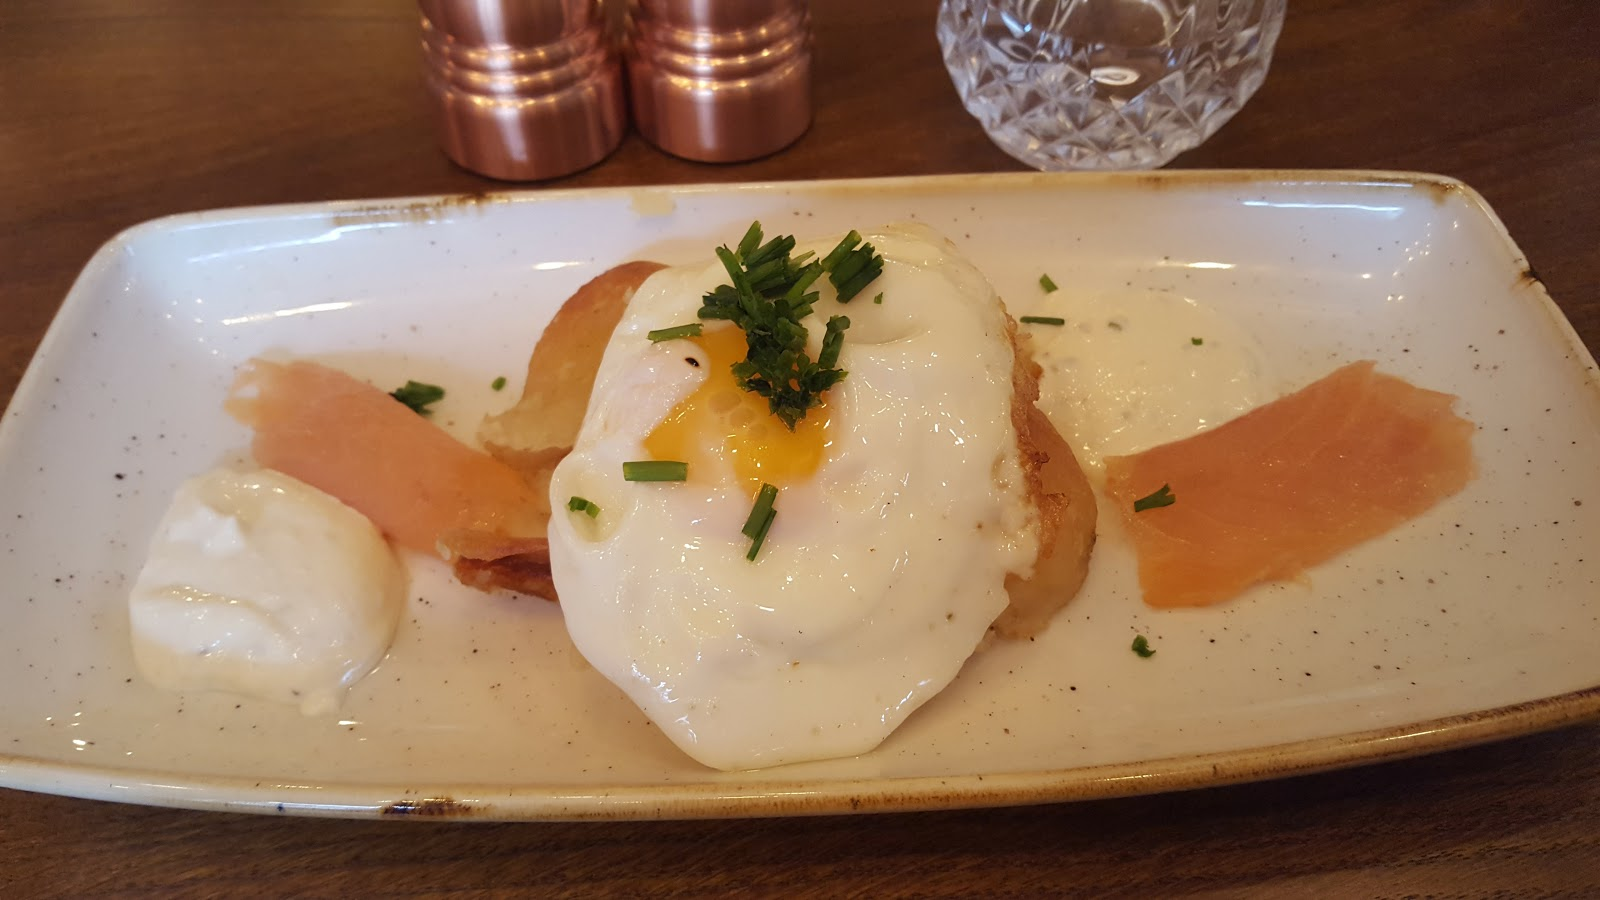 Smoked Salmon and Fried Egg